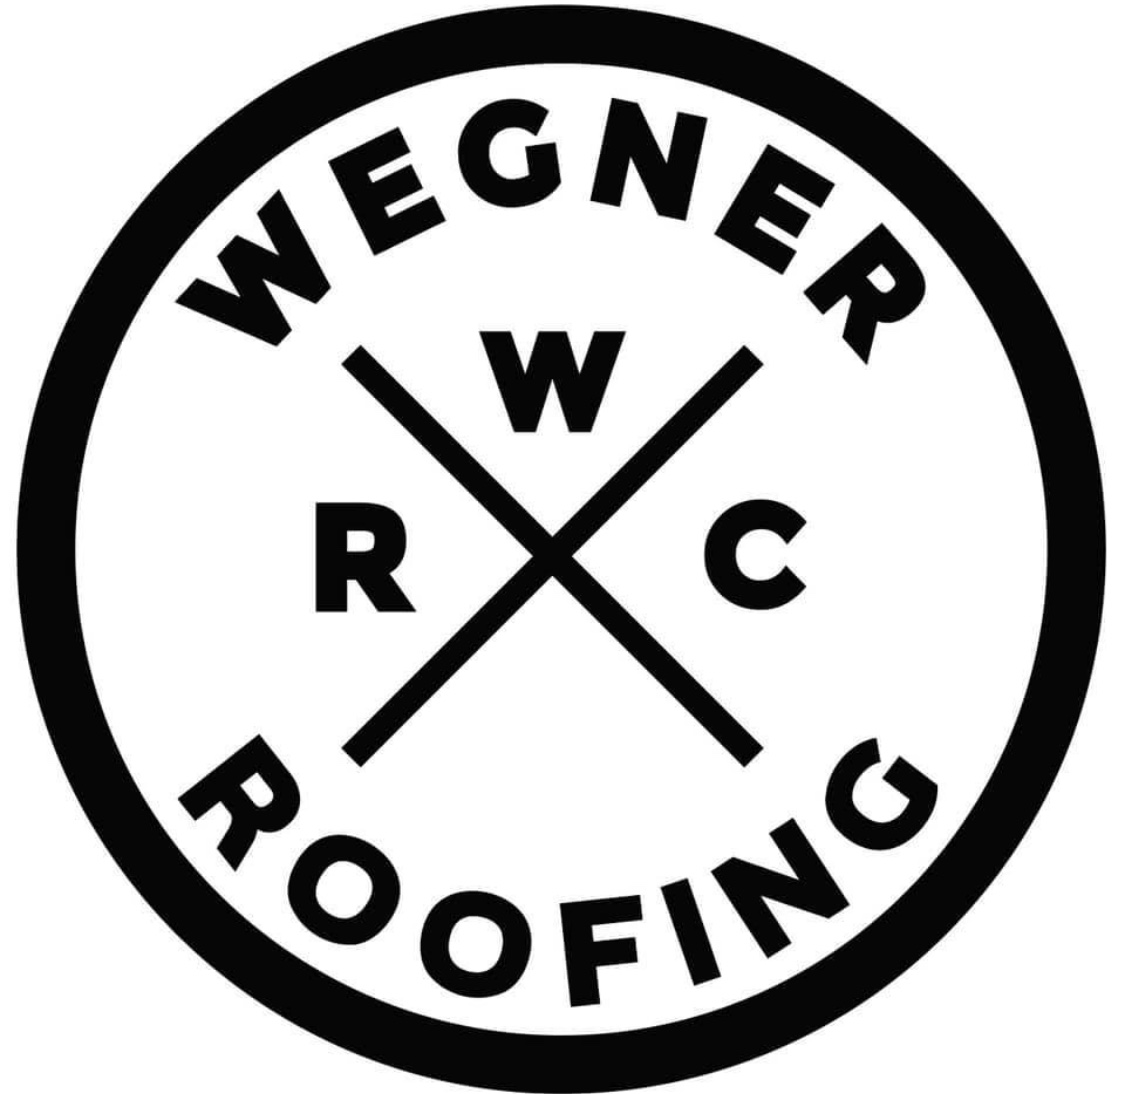 Wegner Roofing Advocates for Timely Roof Repairs